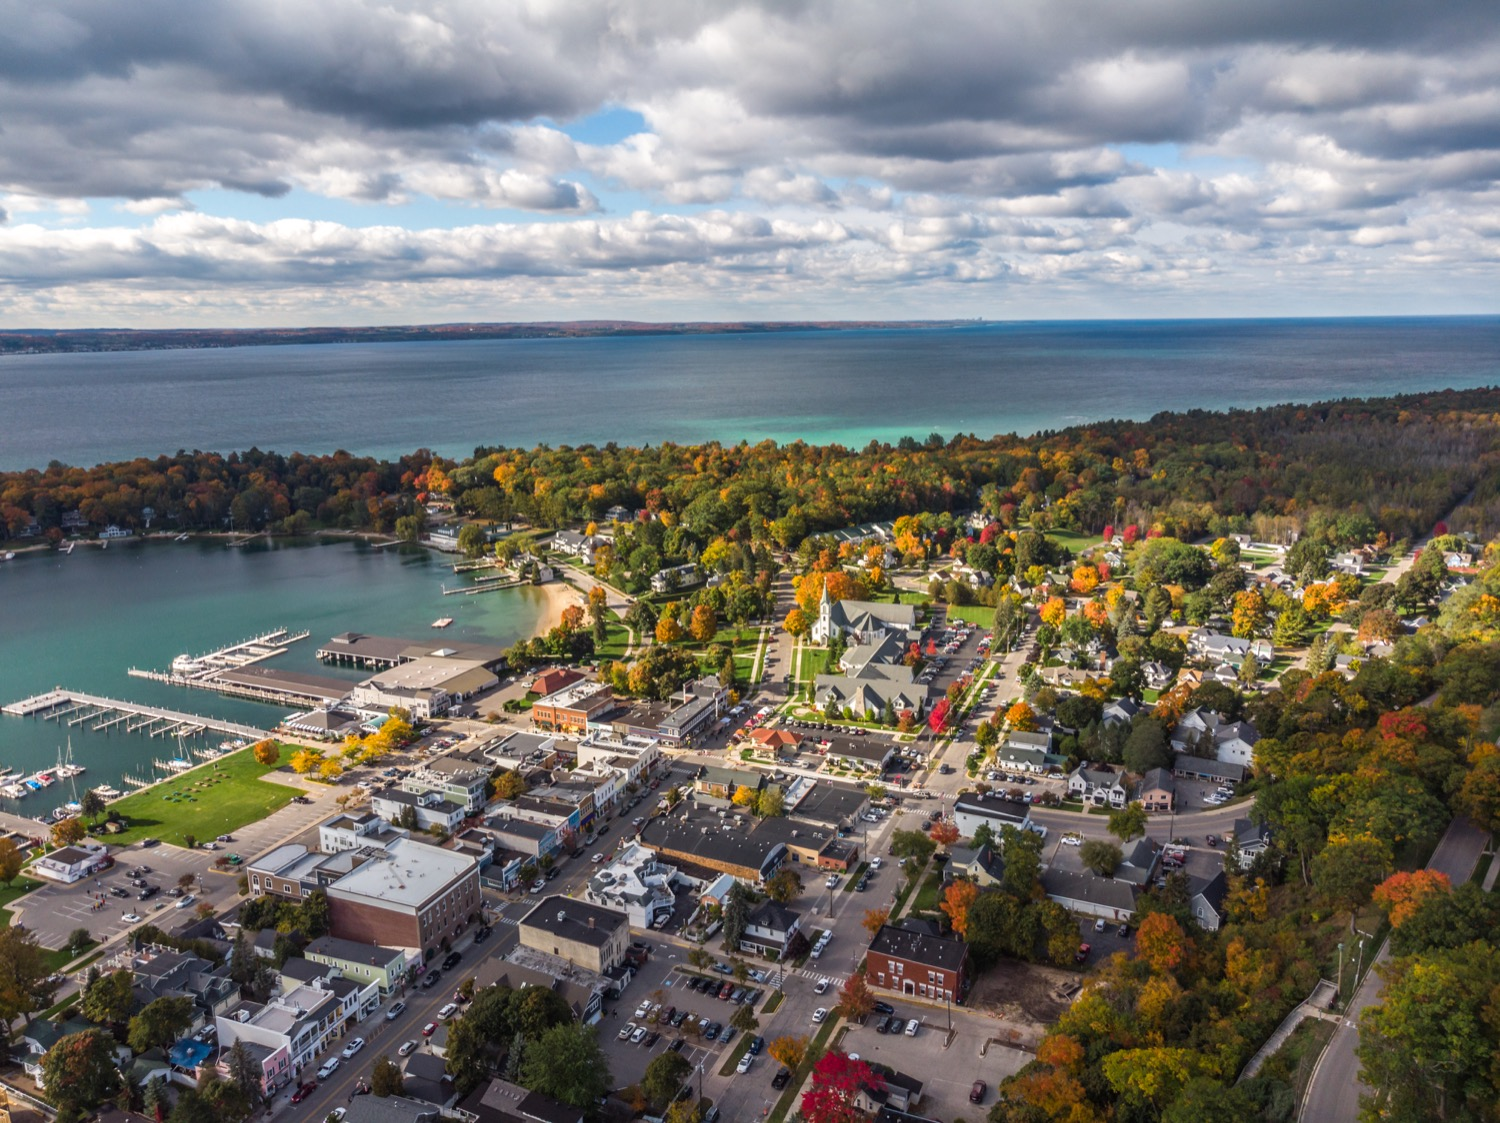 The Festival would like to thank Nate Graham and Paul Heneks of InPlaneView for the use of this photograph. All  InPlaneView  books benefit the Harbor Springs Community Food Pantry. This aerial view of Harbor Springs will appear on the 2019 Festival program cover and commemorative poster.